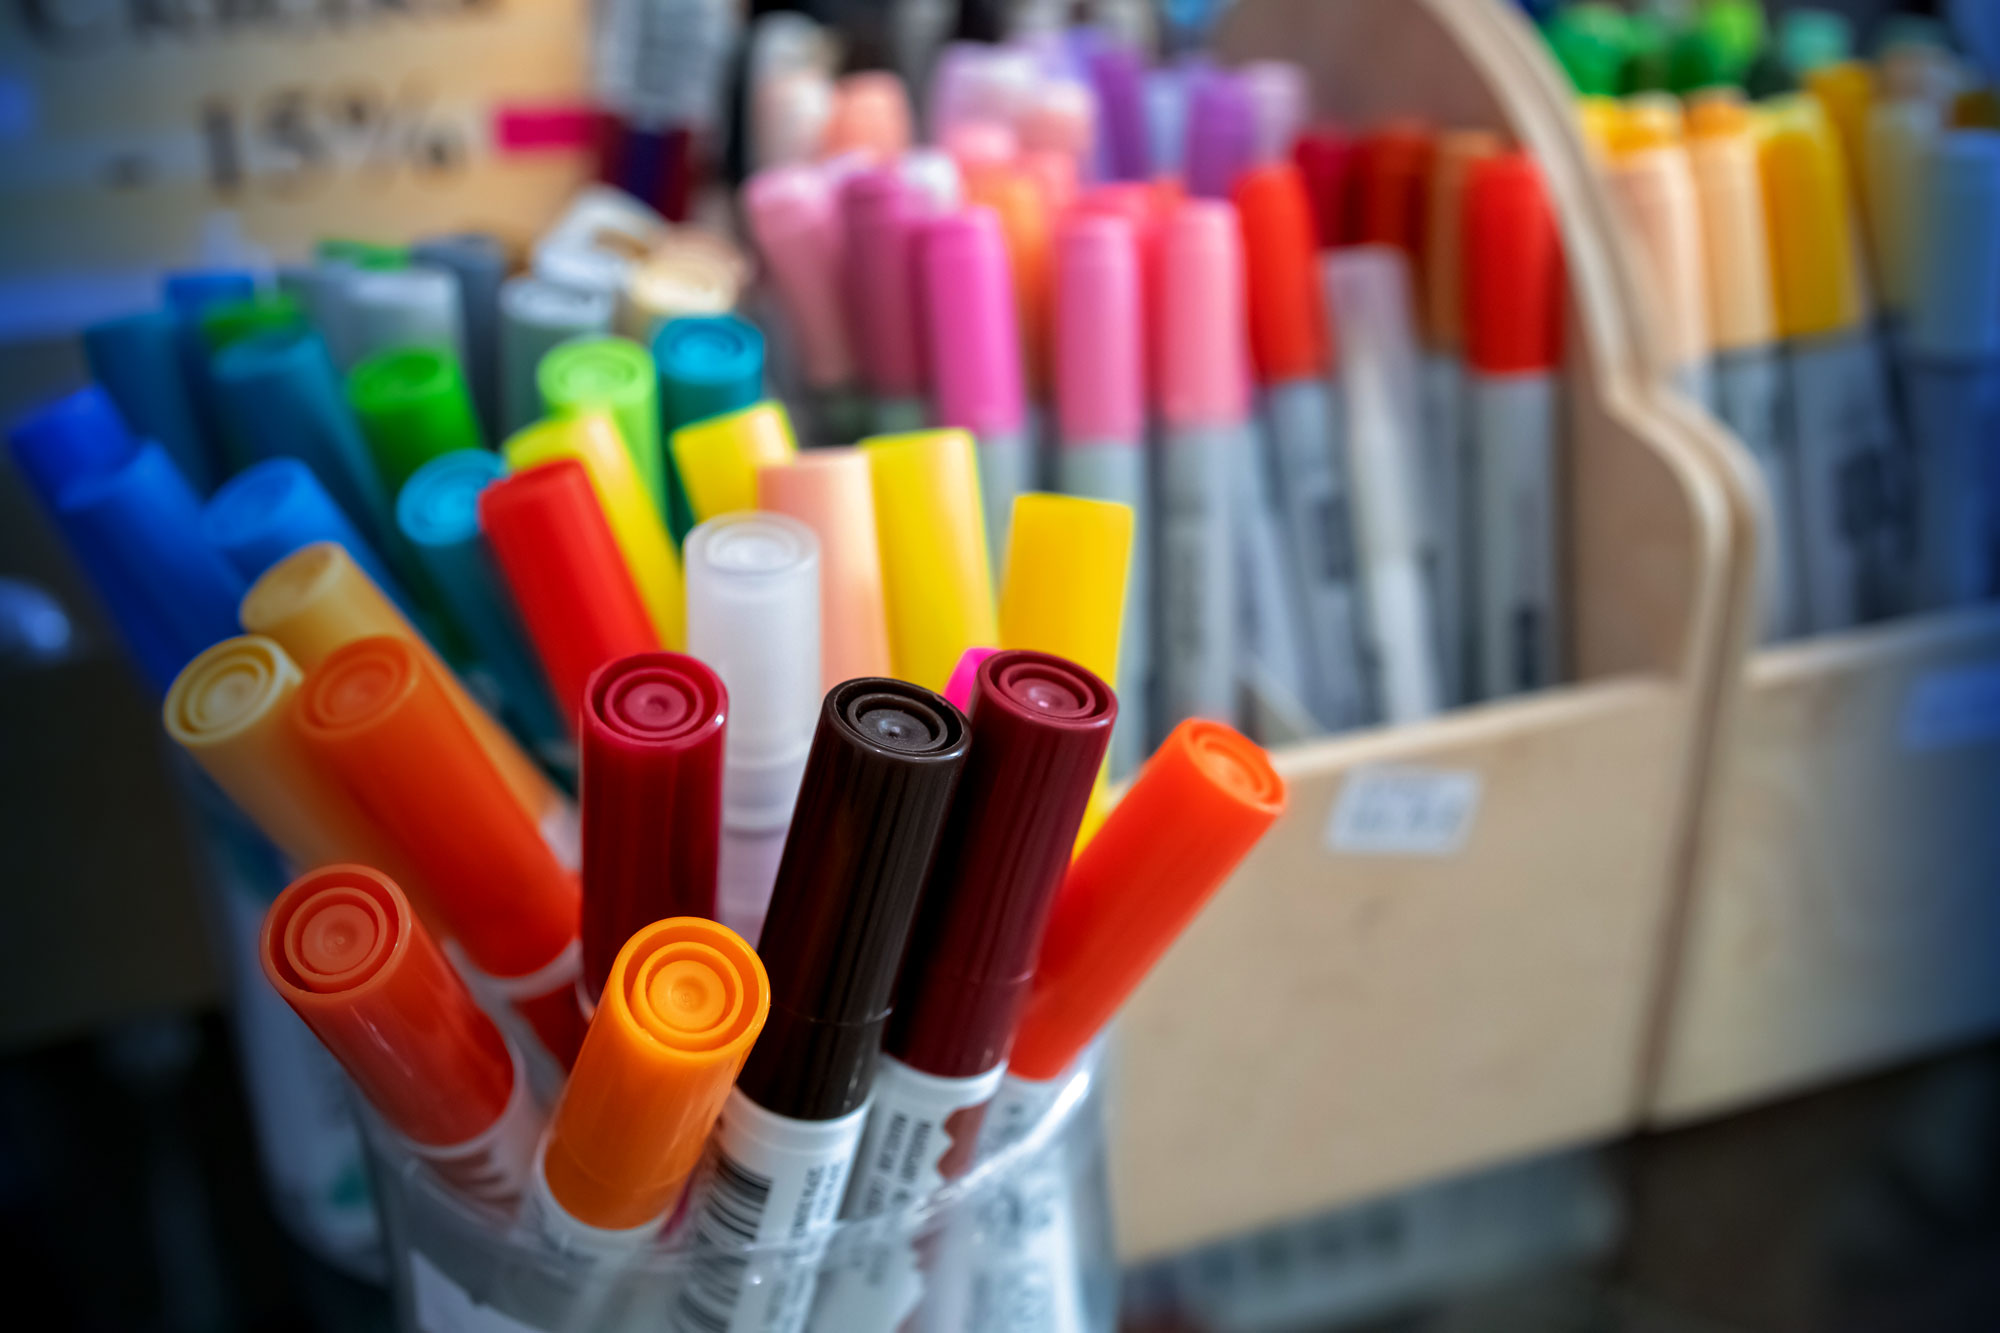 A large selection of coloured textas and sharpies in boxes and jars